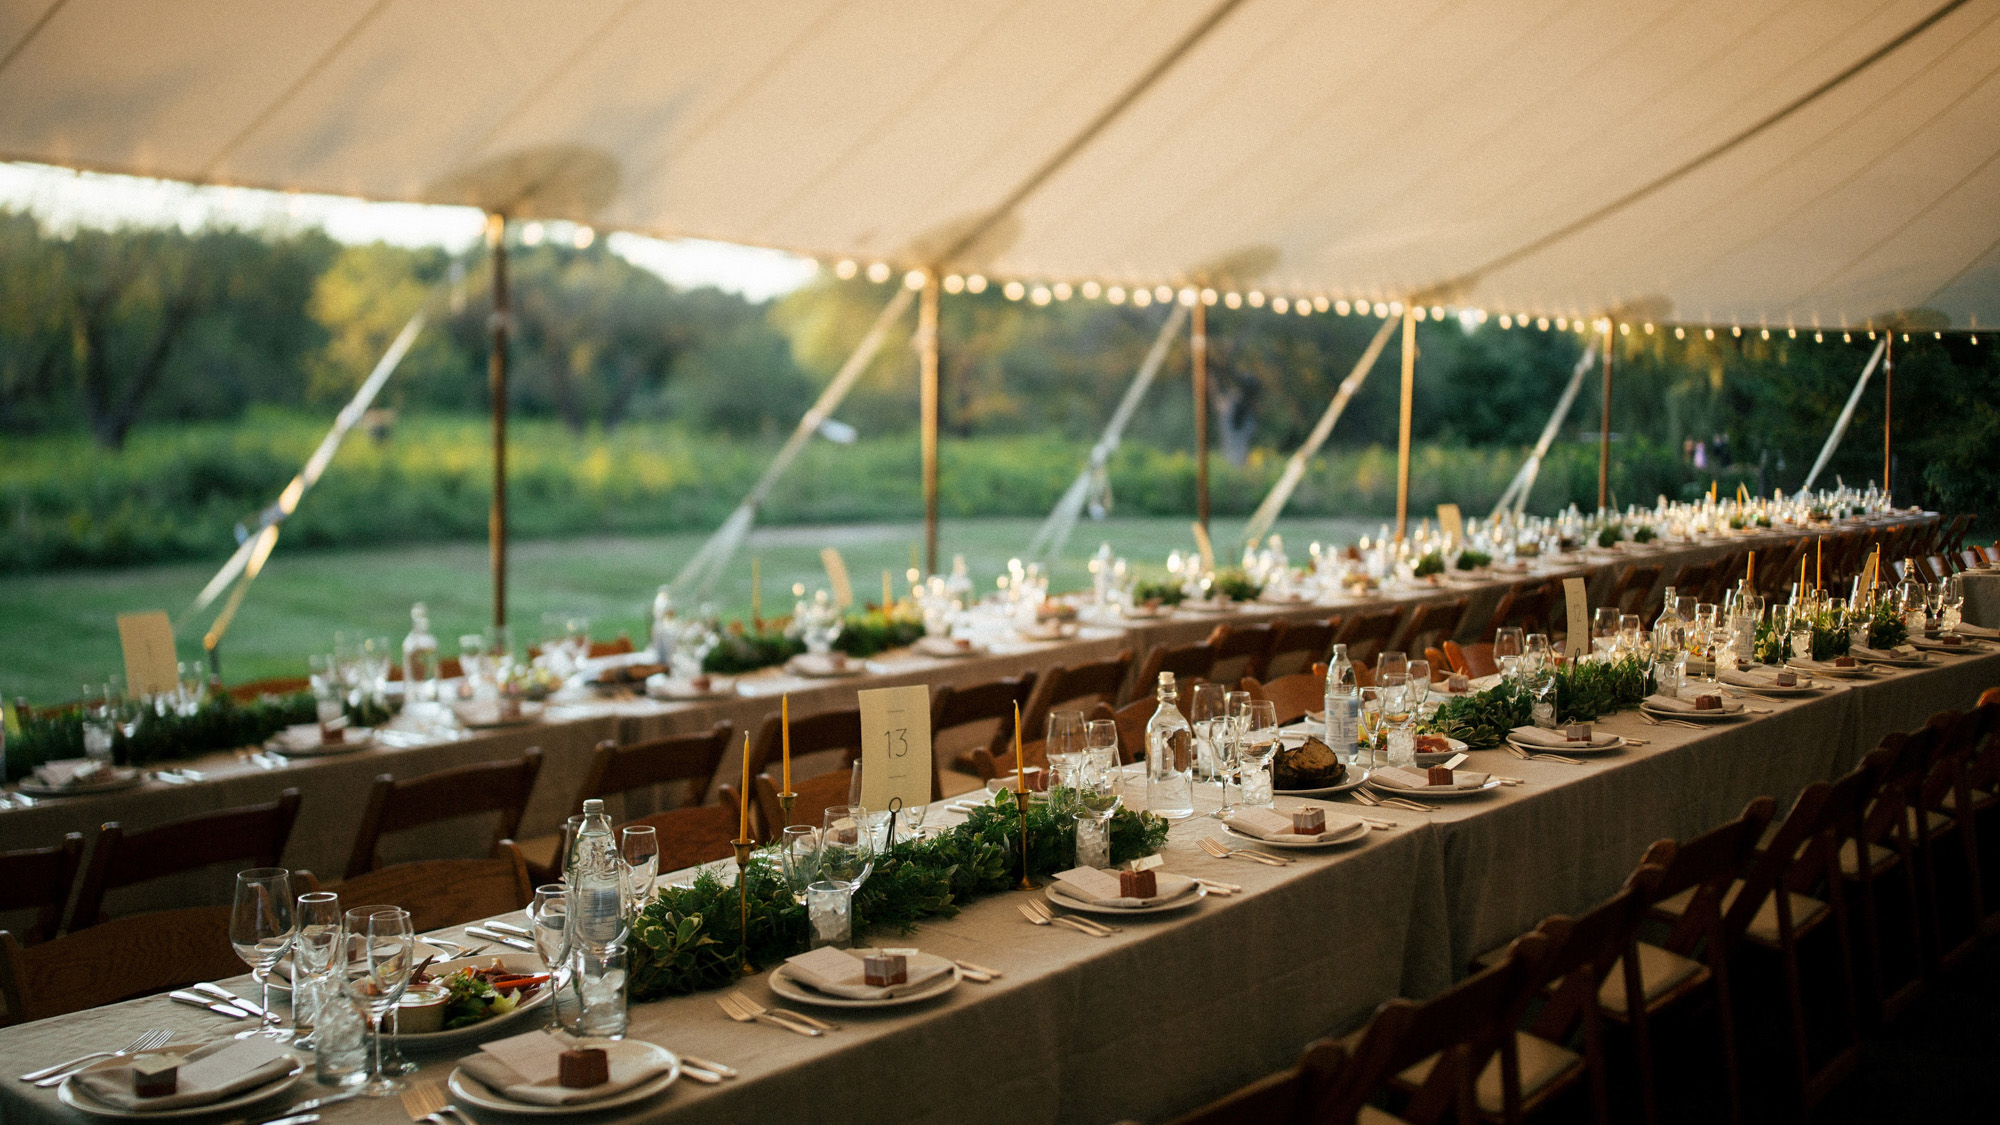 upstate_new_york_wedding_alec_vanderboom-0087.jpg